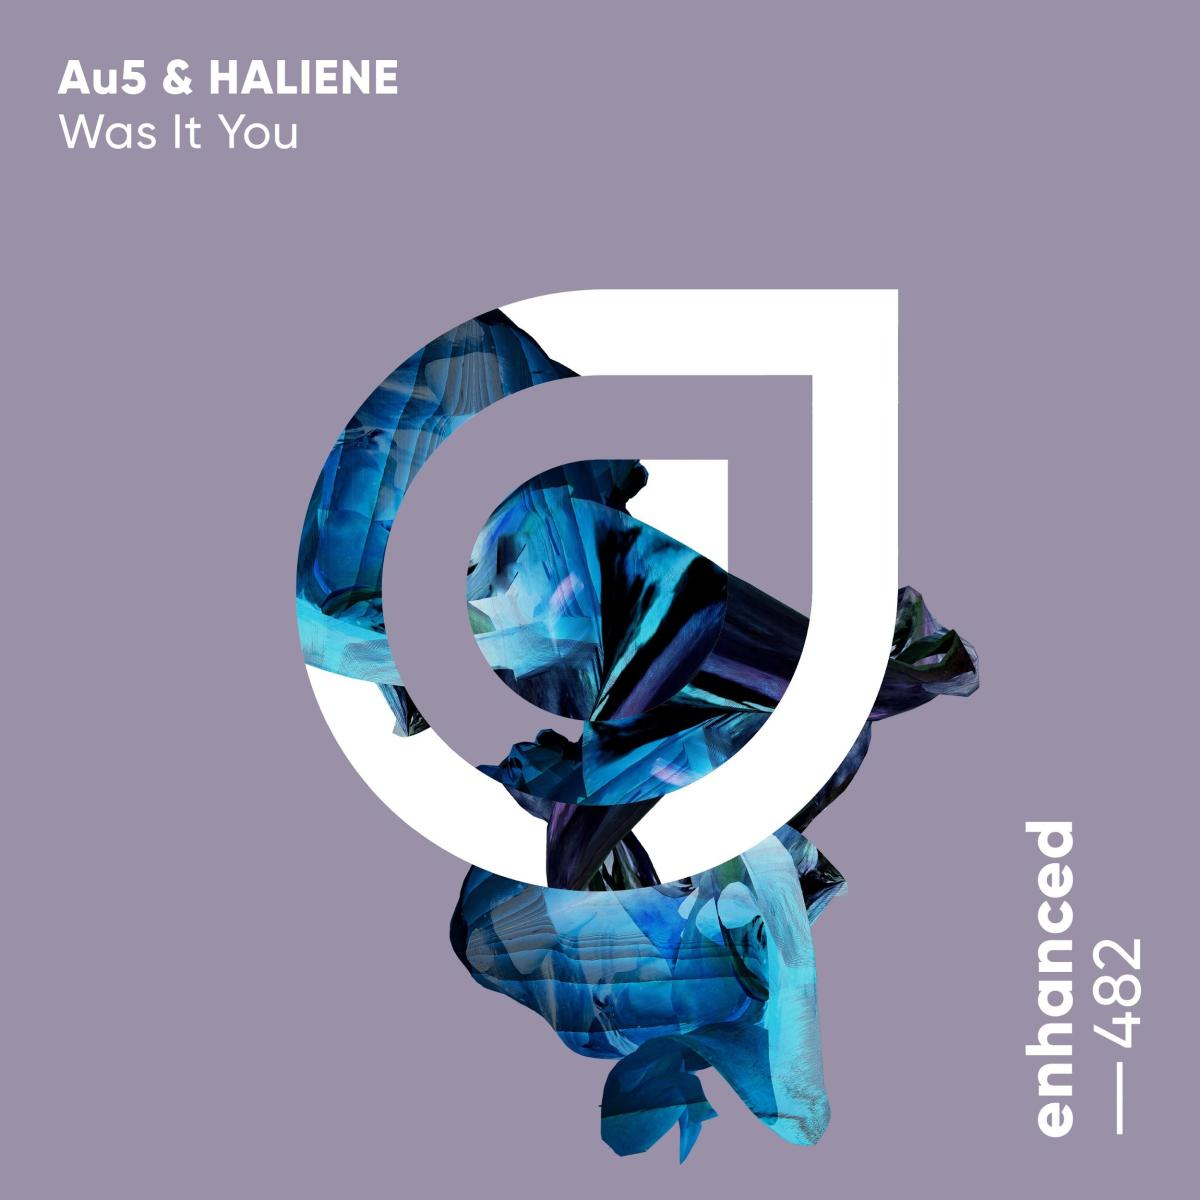 """Au5 and HALIENE's """"Was It You"""" artwork."""